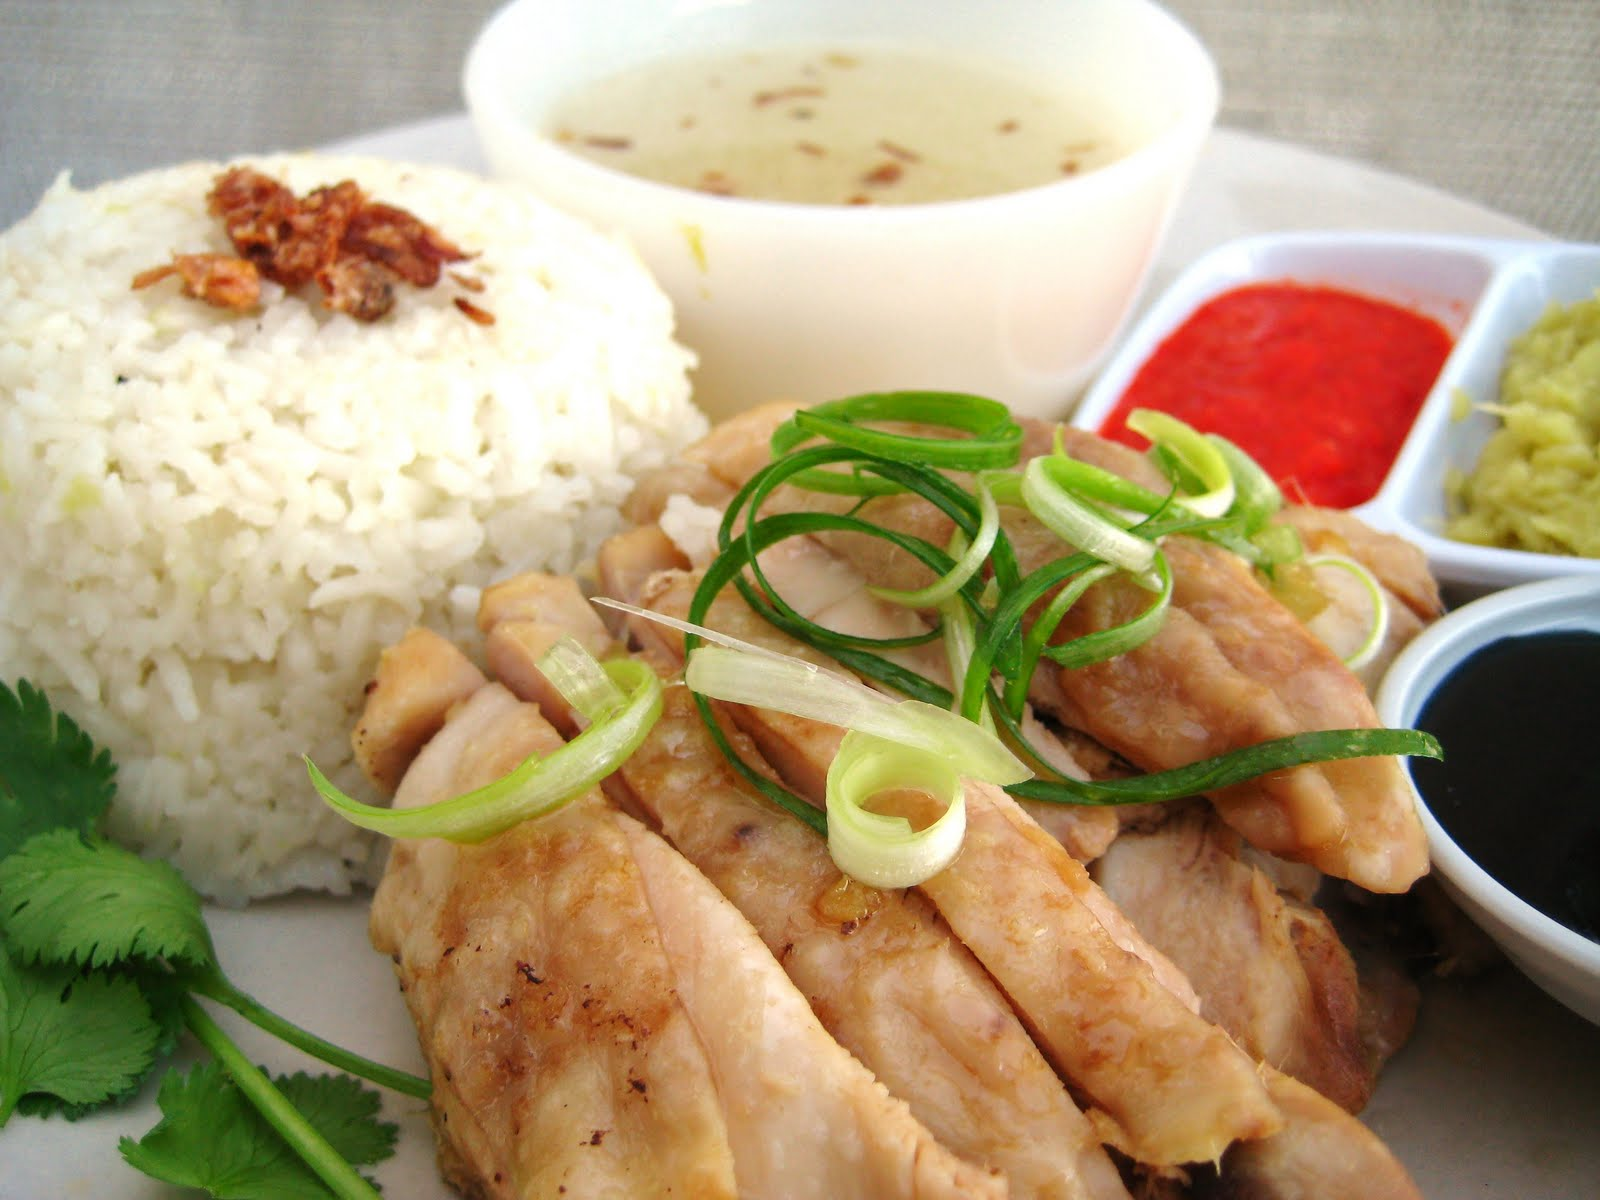 ... whilst I love a lot of different foods, I Love Hainanese Chicken Rice